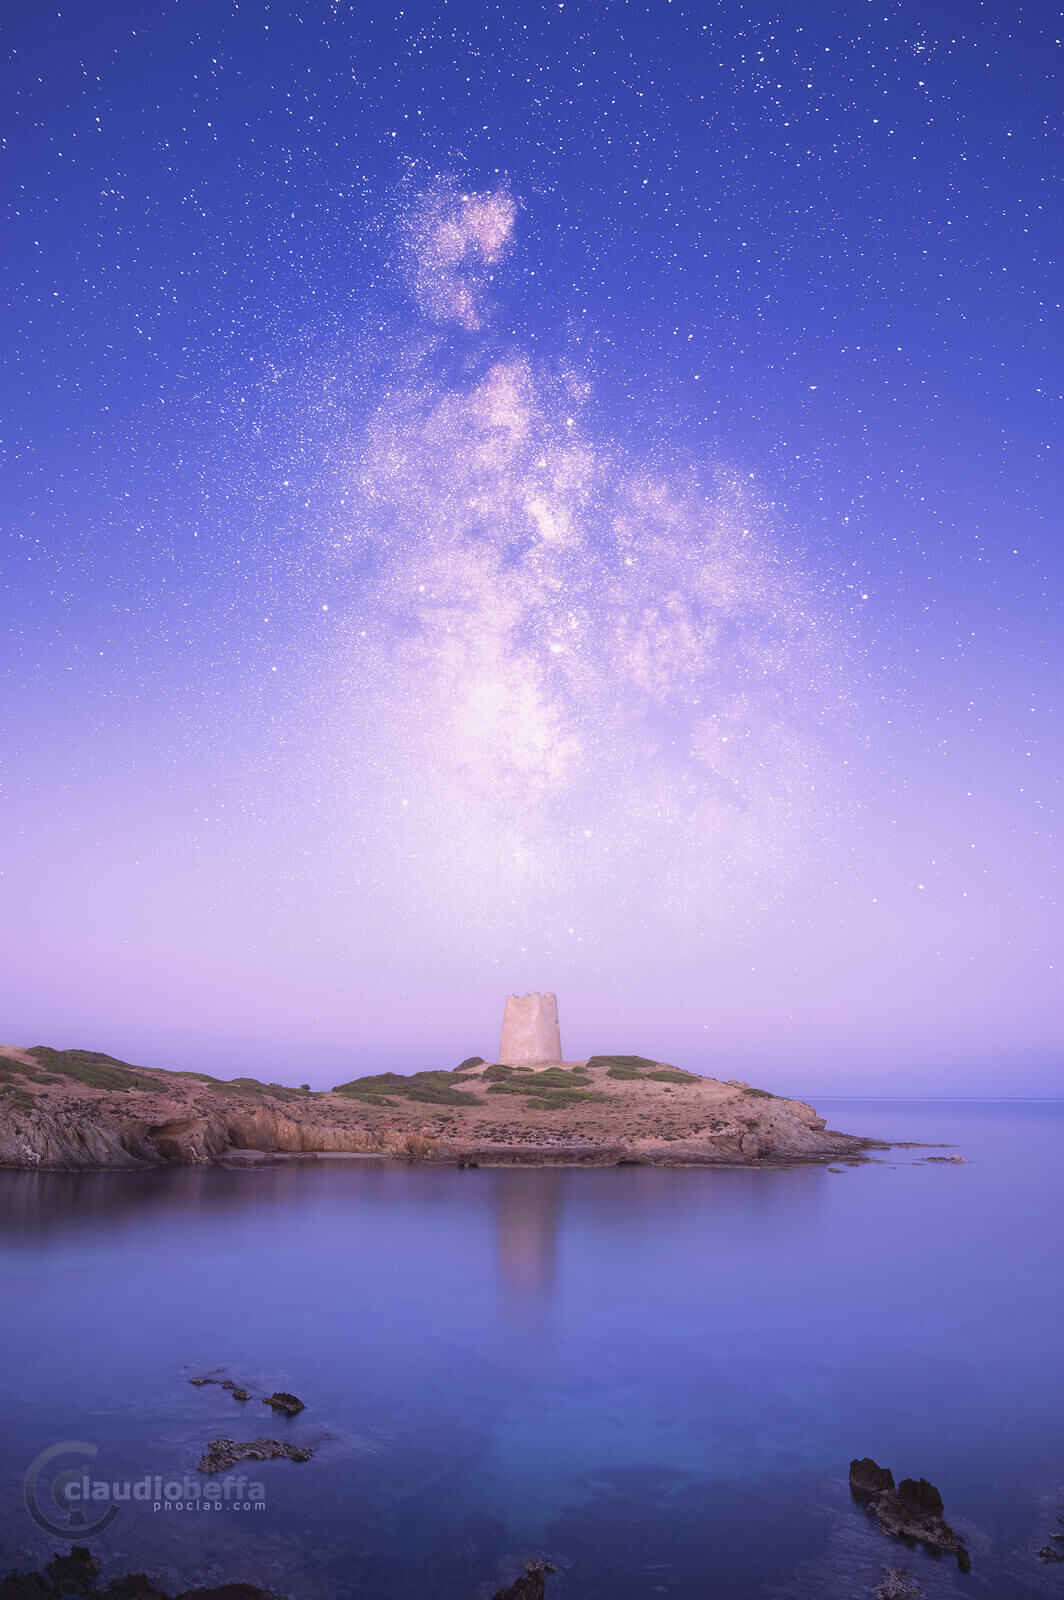 Gate to the other side, watchtower, astrophotography, milky way, night, stars, sea, tower, sky, reflections, seascape, sardinia, italy, nature, blue hour, sunrise